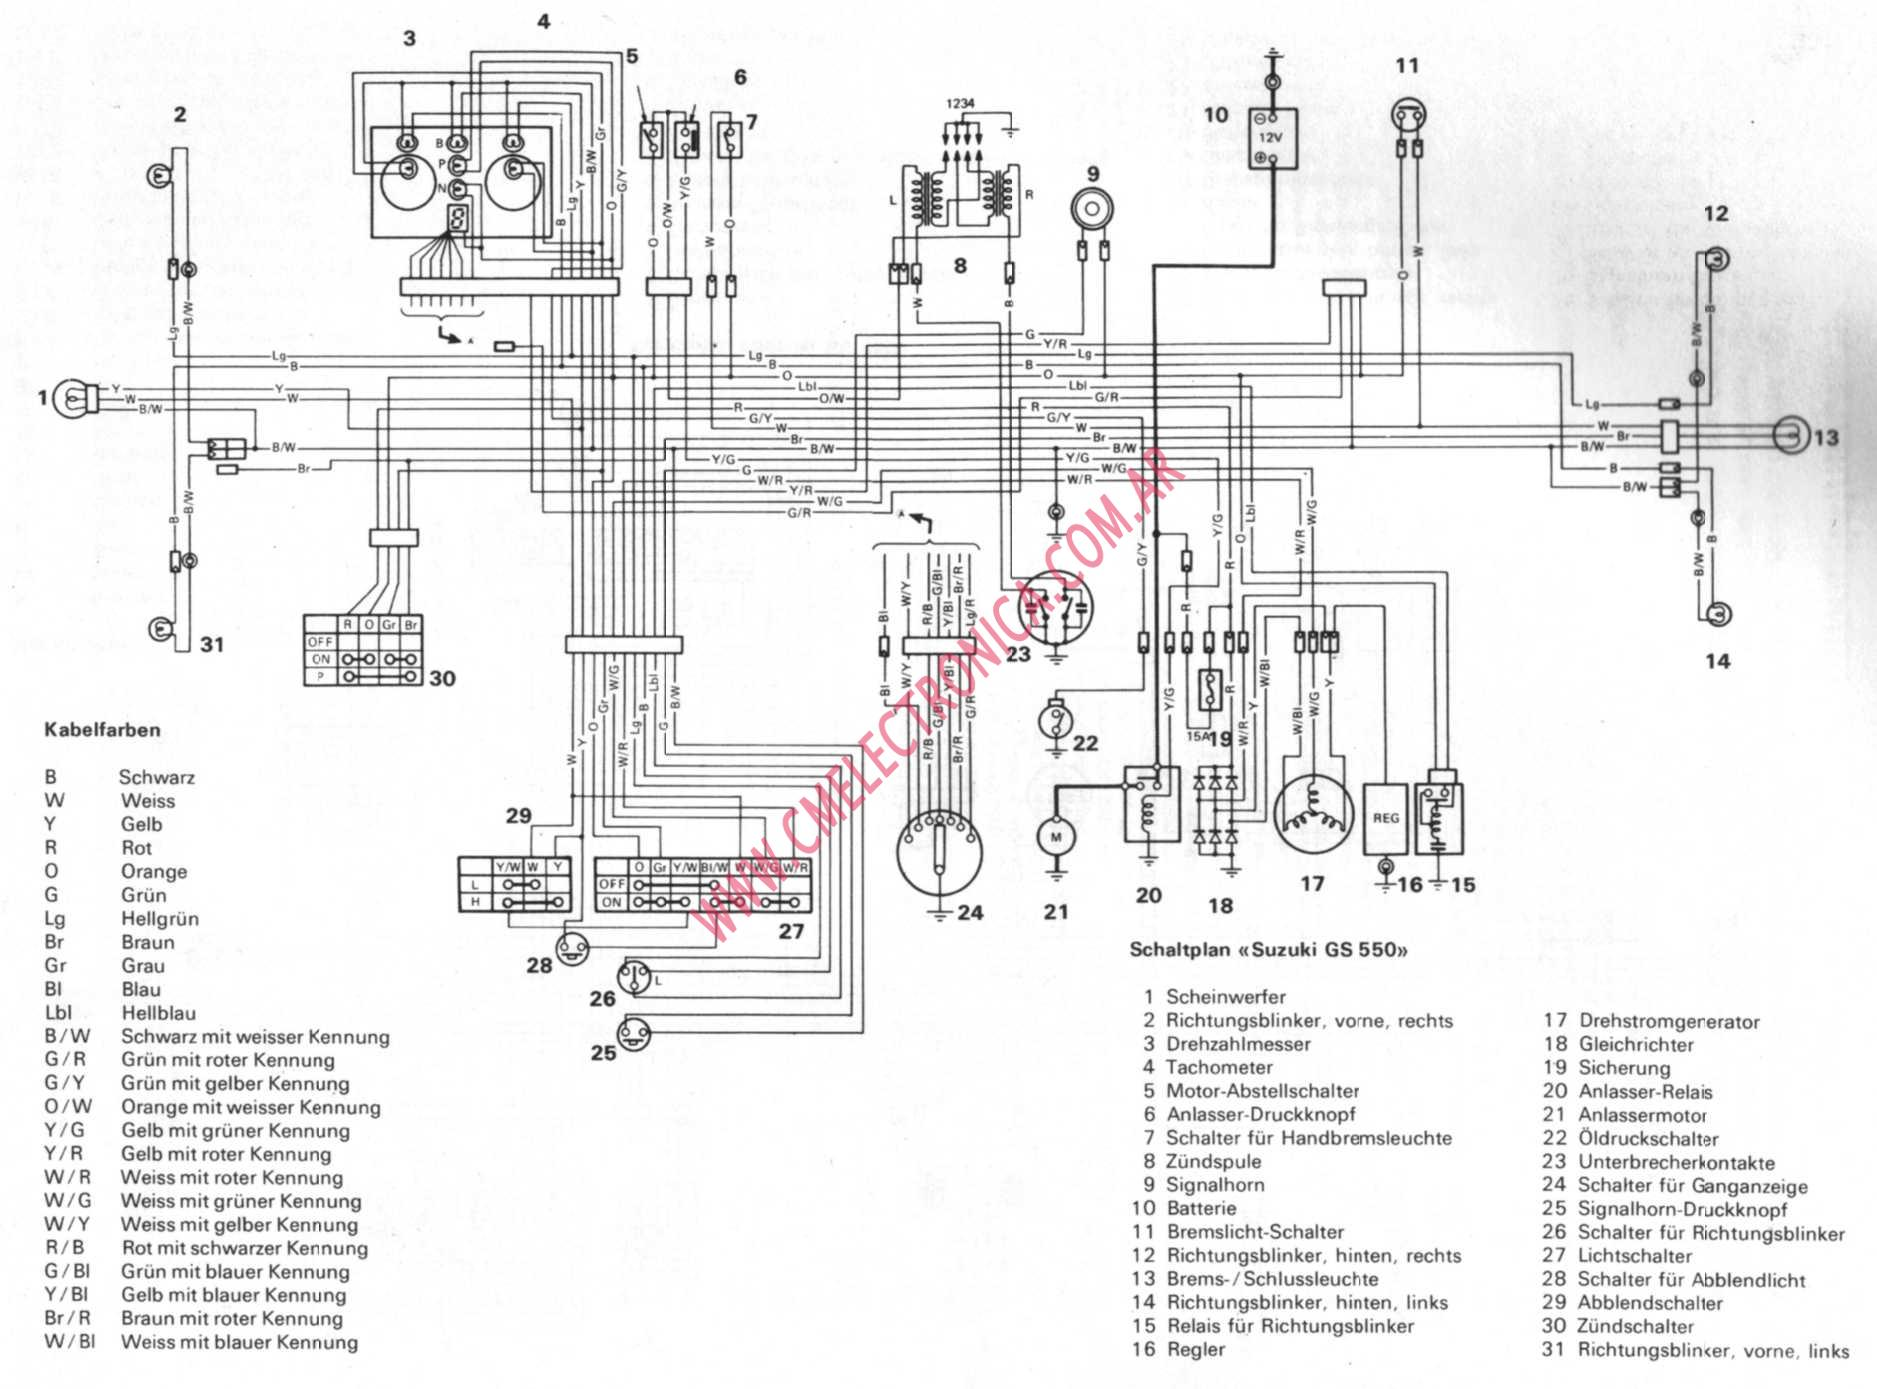 suzuki gs550 suzuki gs550 wiring diagram efcaviation com gs550 wiring diagram at fashall.co